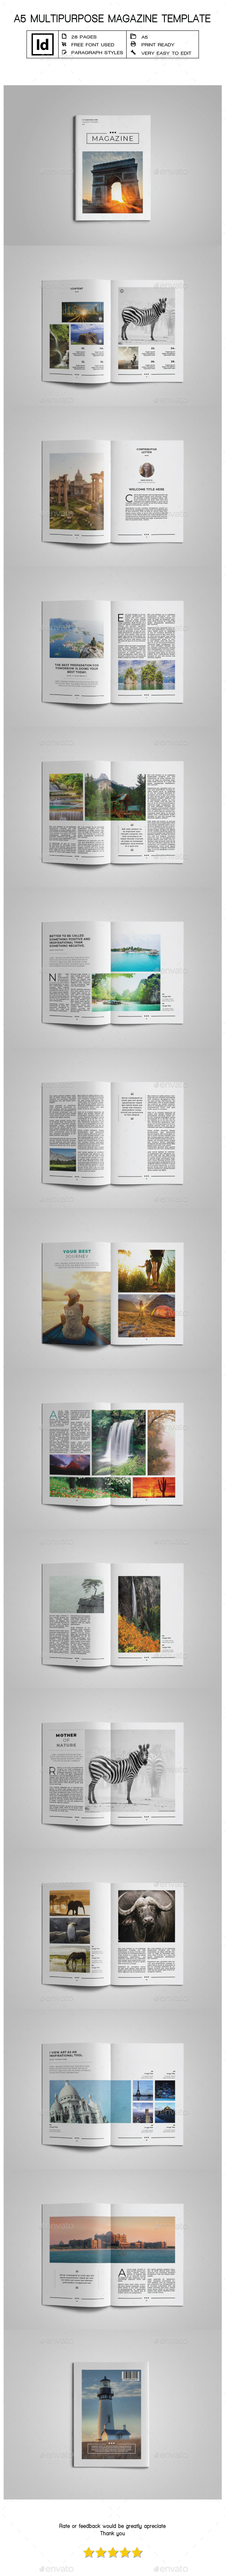 A5 Multipurpose Magazine Template IV - Magazines Print Templates